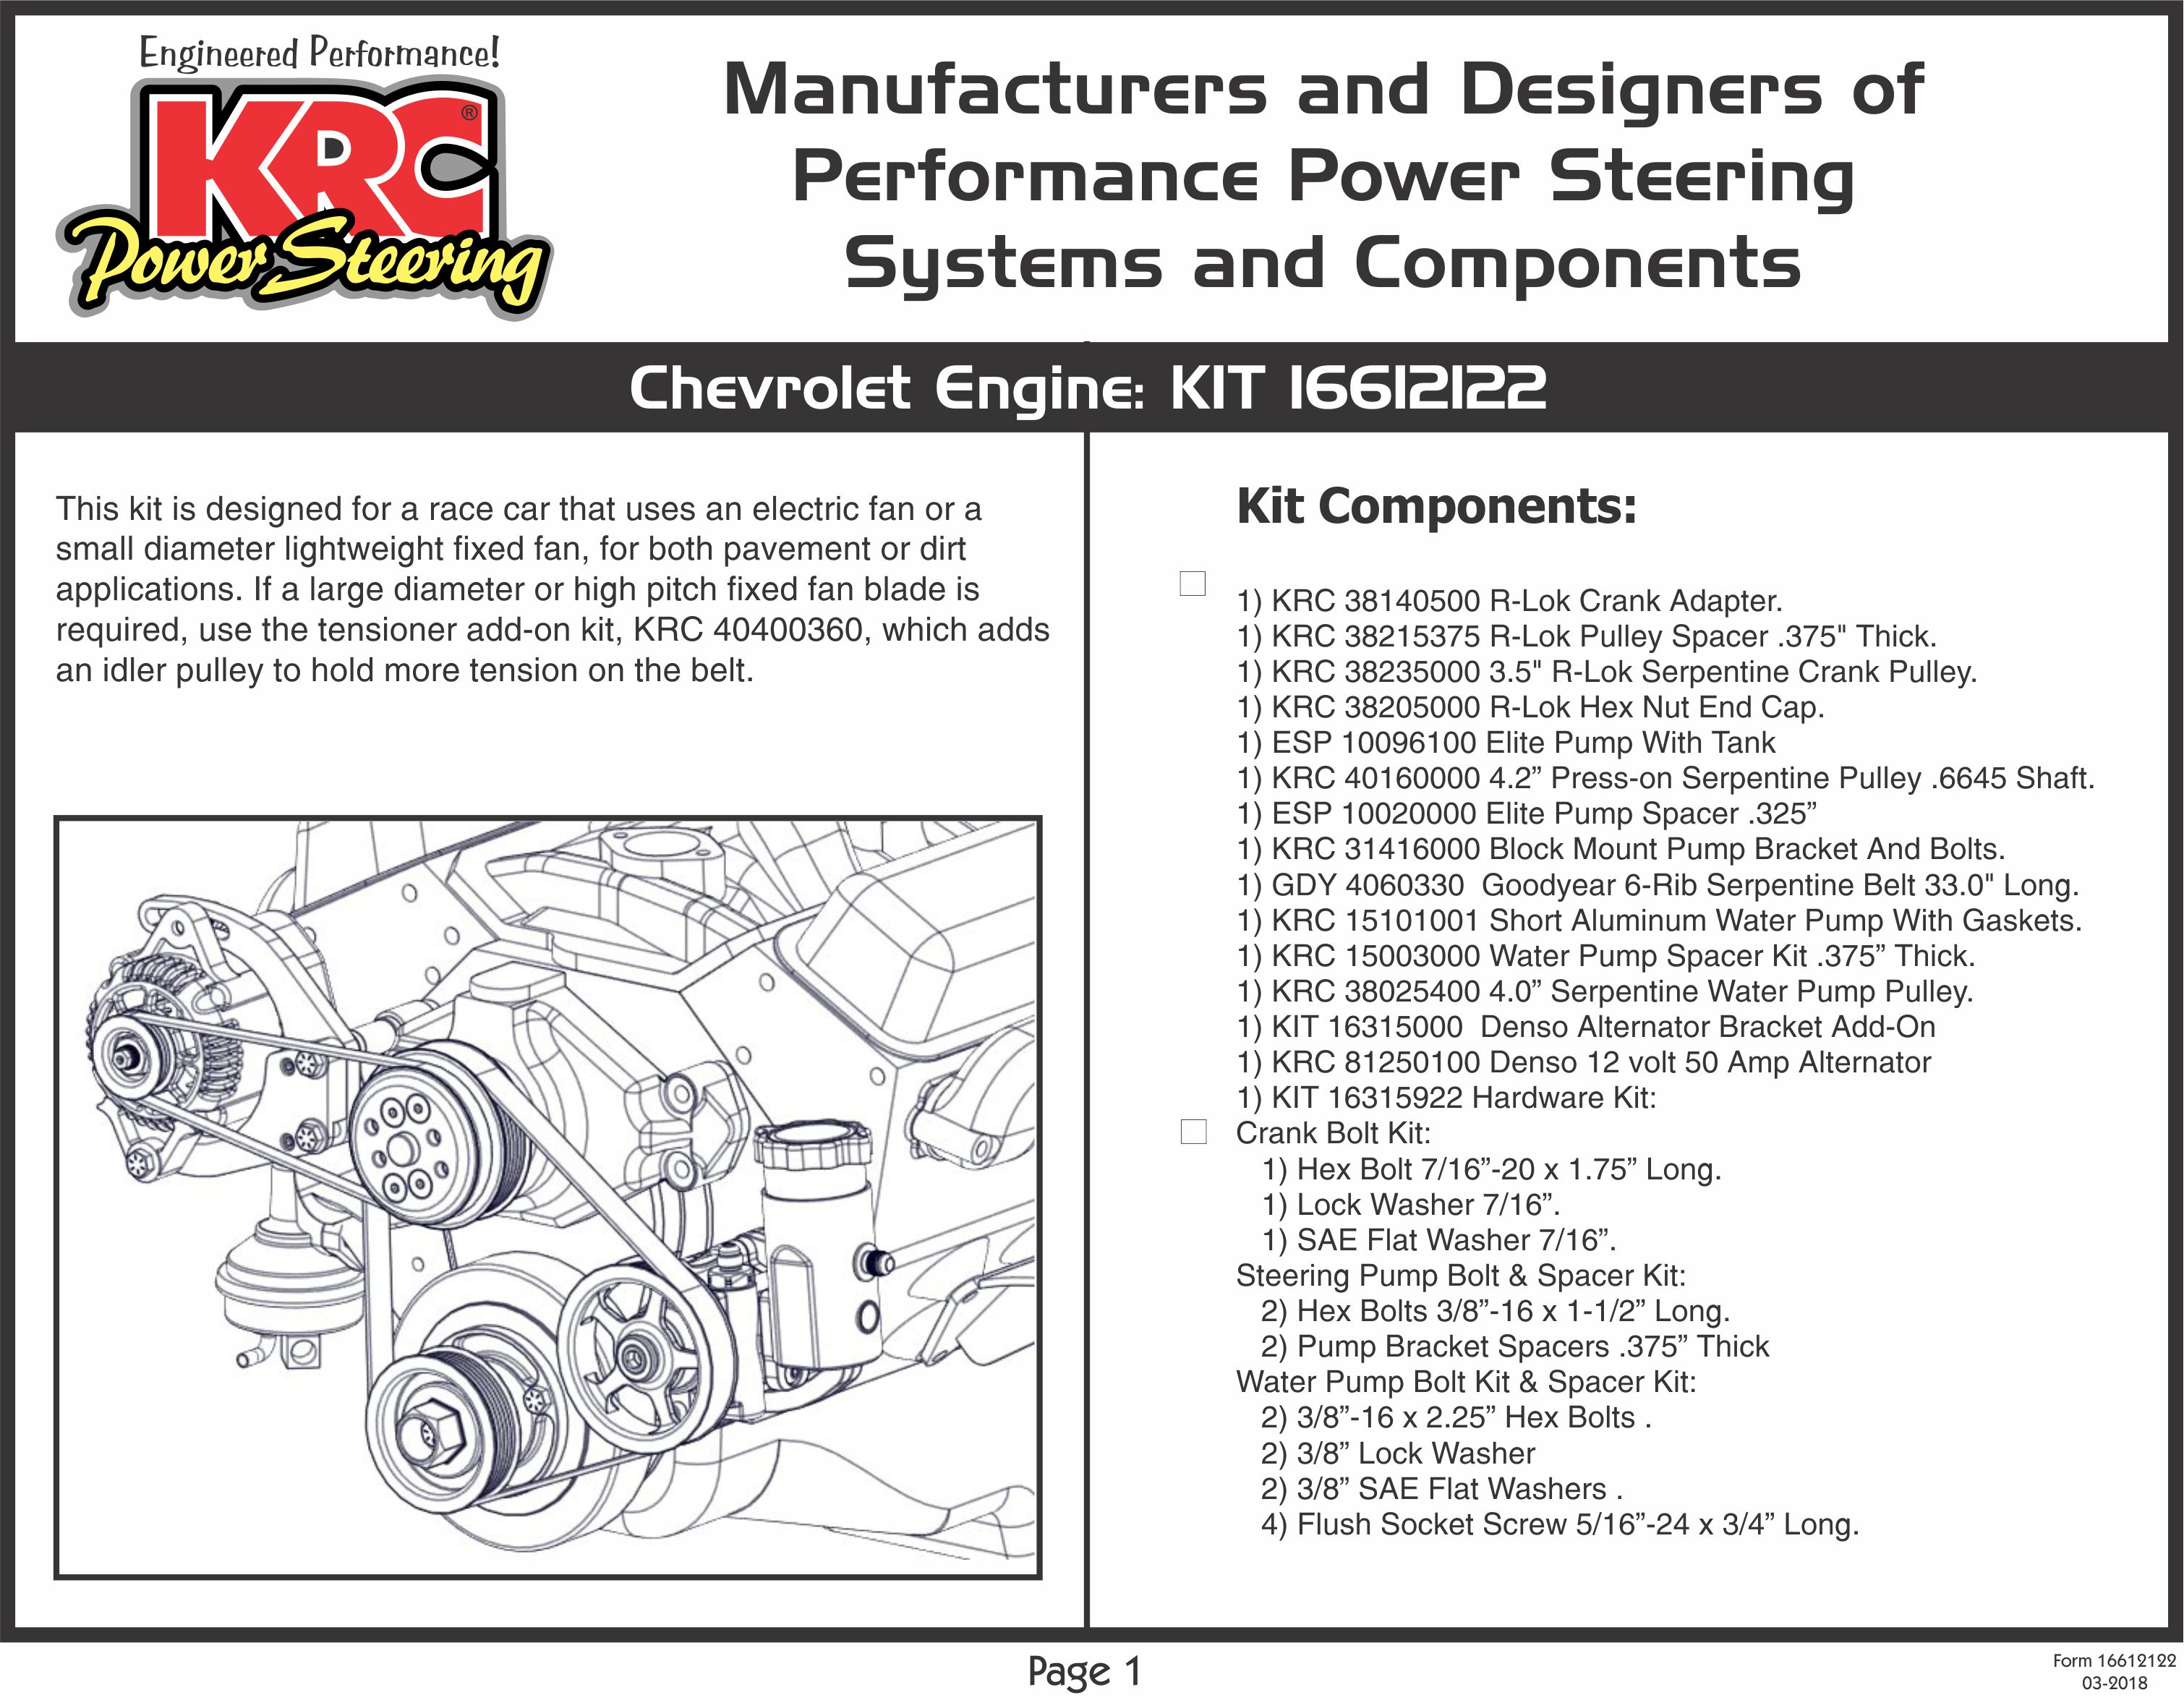 Krc Power Steering Instructions Pics Photos Parts Detail Diagram For Alternator Bracket Complete Engine Kit